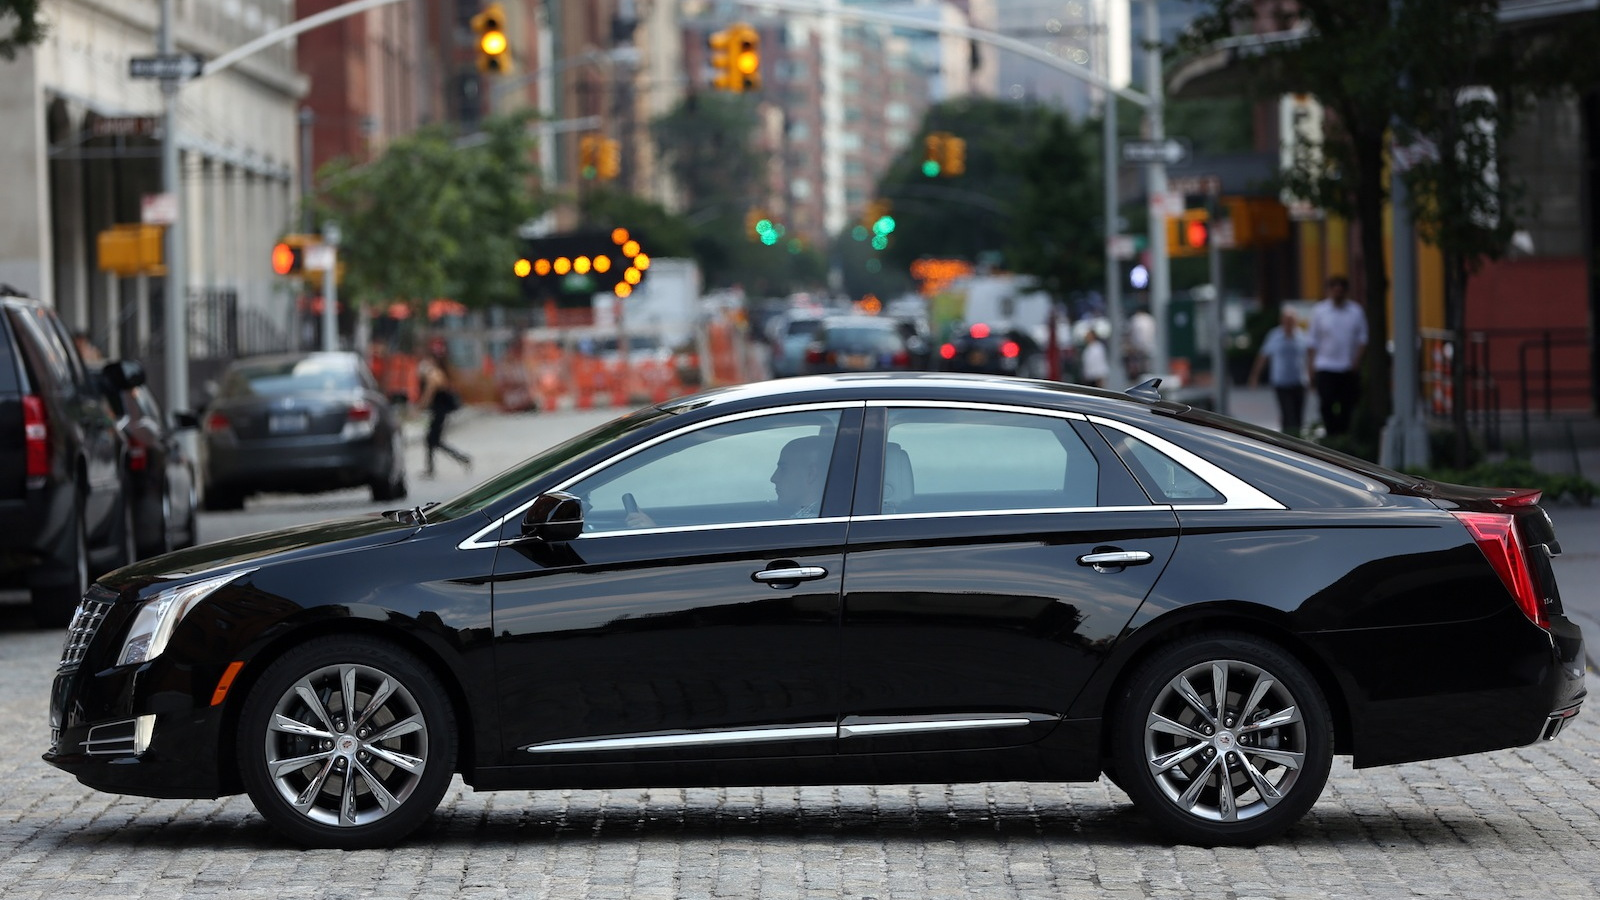 Cadillac S Xts Sedan Looks To Bring Luxury To Livery